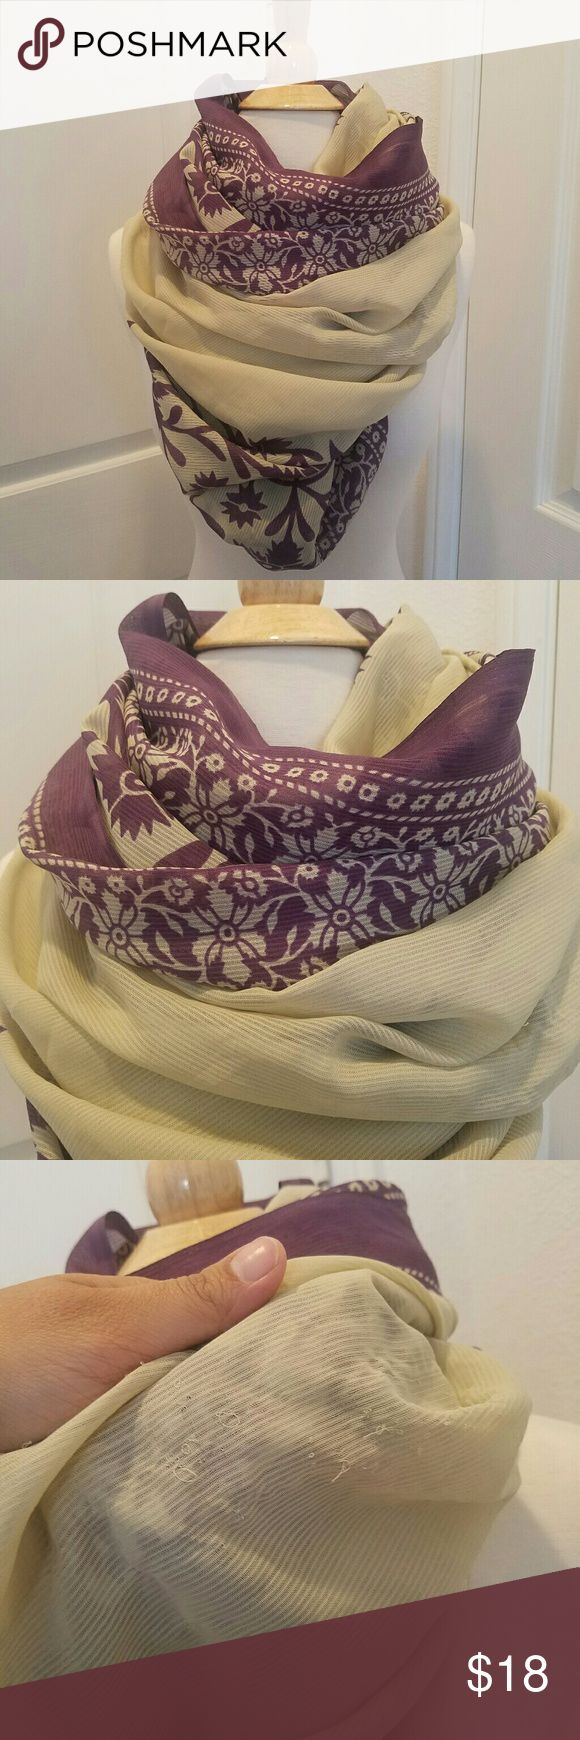 Vintage floral purple and beige scarf Thanks for checking out my closet. I am open to offers :) please let me know if you have questions. I'd be happy to help!  NOT FROM Free People. IT IS VINTAGE :)  Condition is good. It is vintage so it may not be perfect. If you are really interested I will closely look at the piece to check for any flaws. Free People Accessories Scarves & Wraps